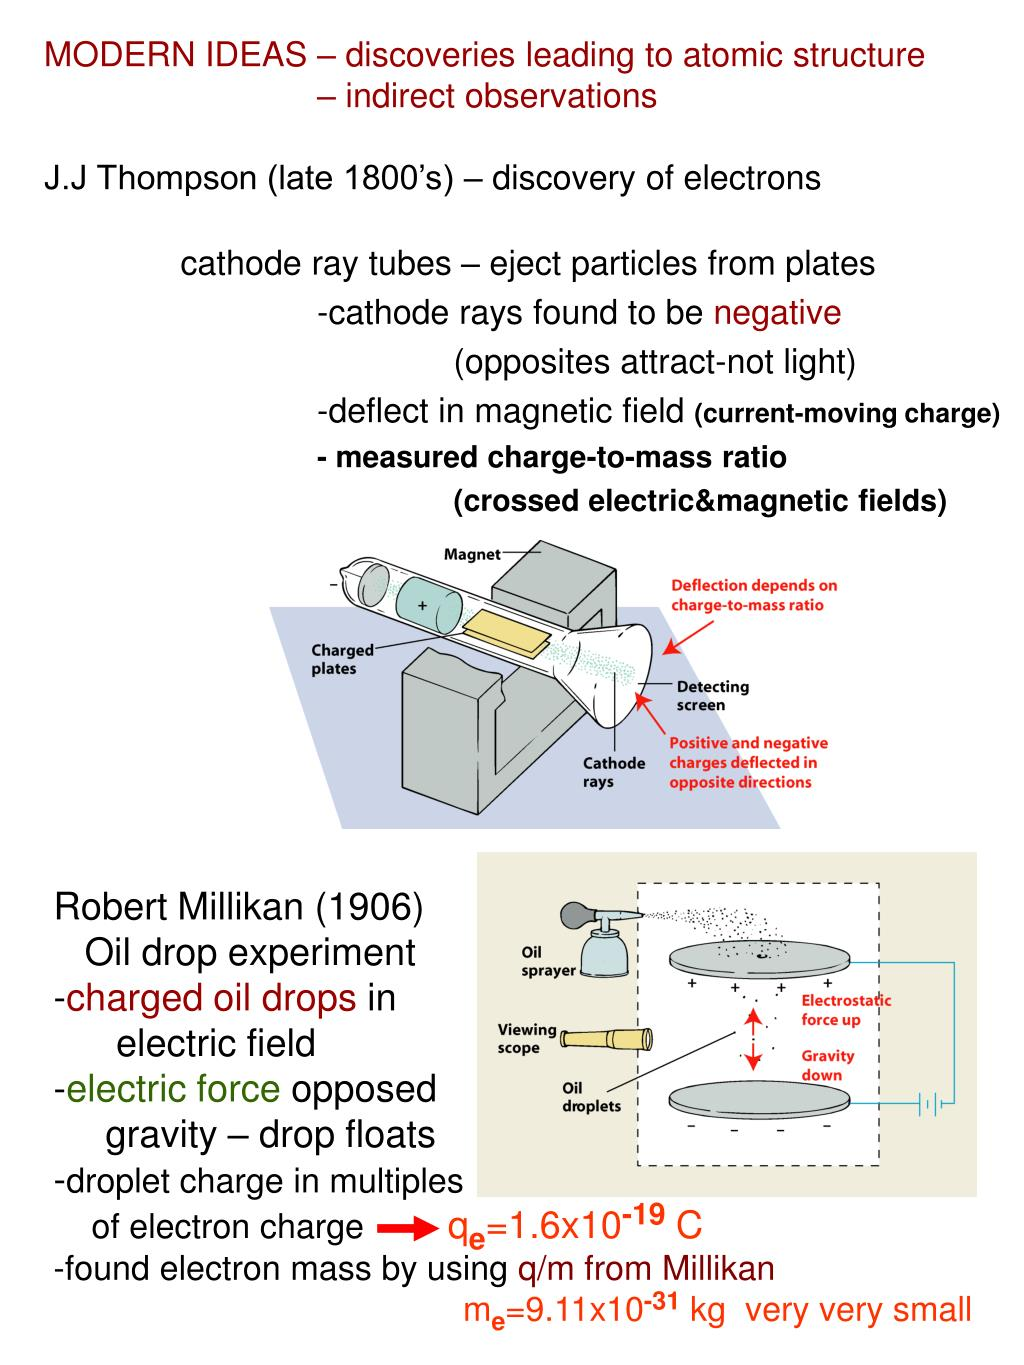 MODERN IDEAS – discoveries leading to atomic structure